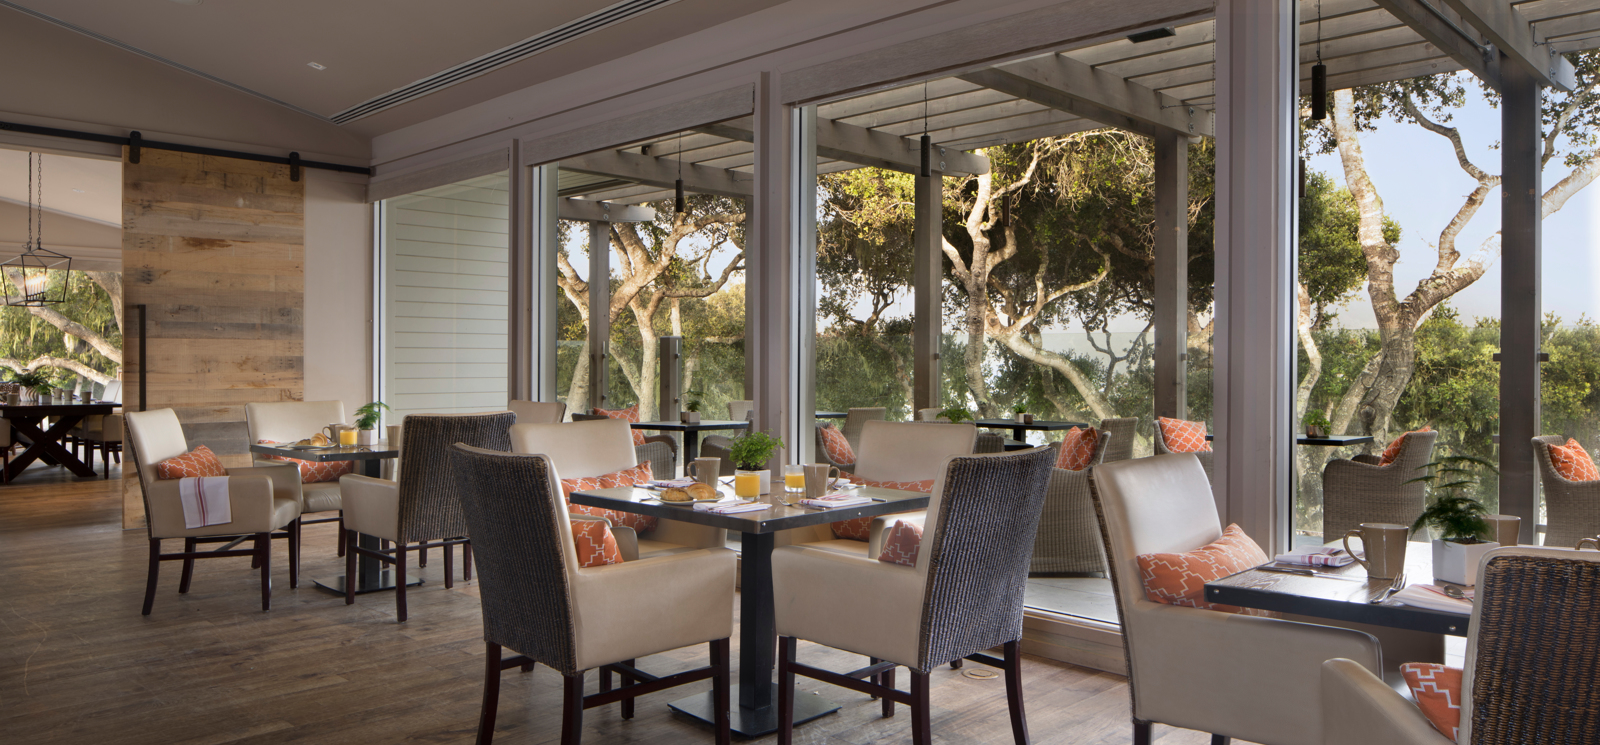 Carmel Valley Ranch_Dining_Valley Kitchen_restaurant_Valley View Room_Breakfast_12_PD